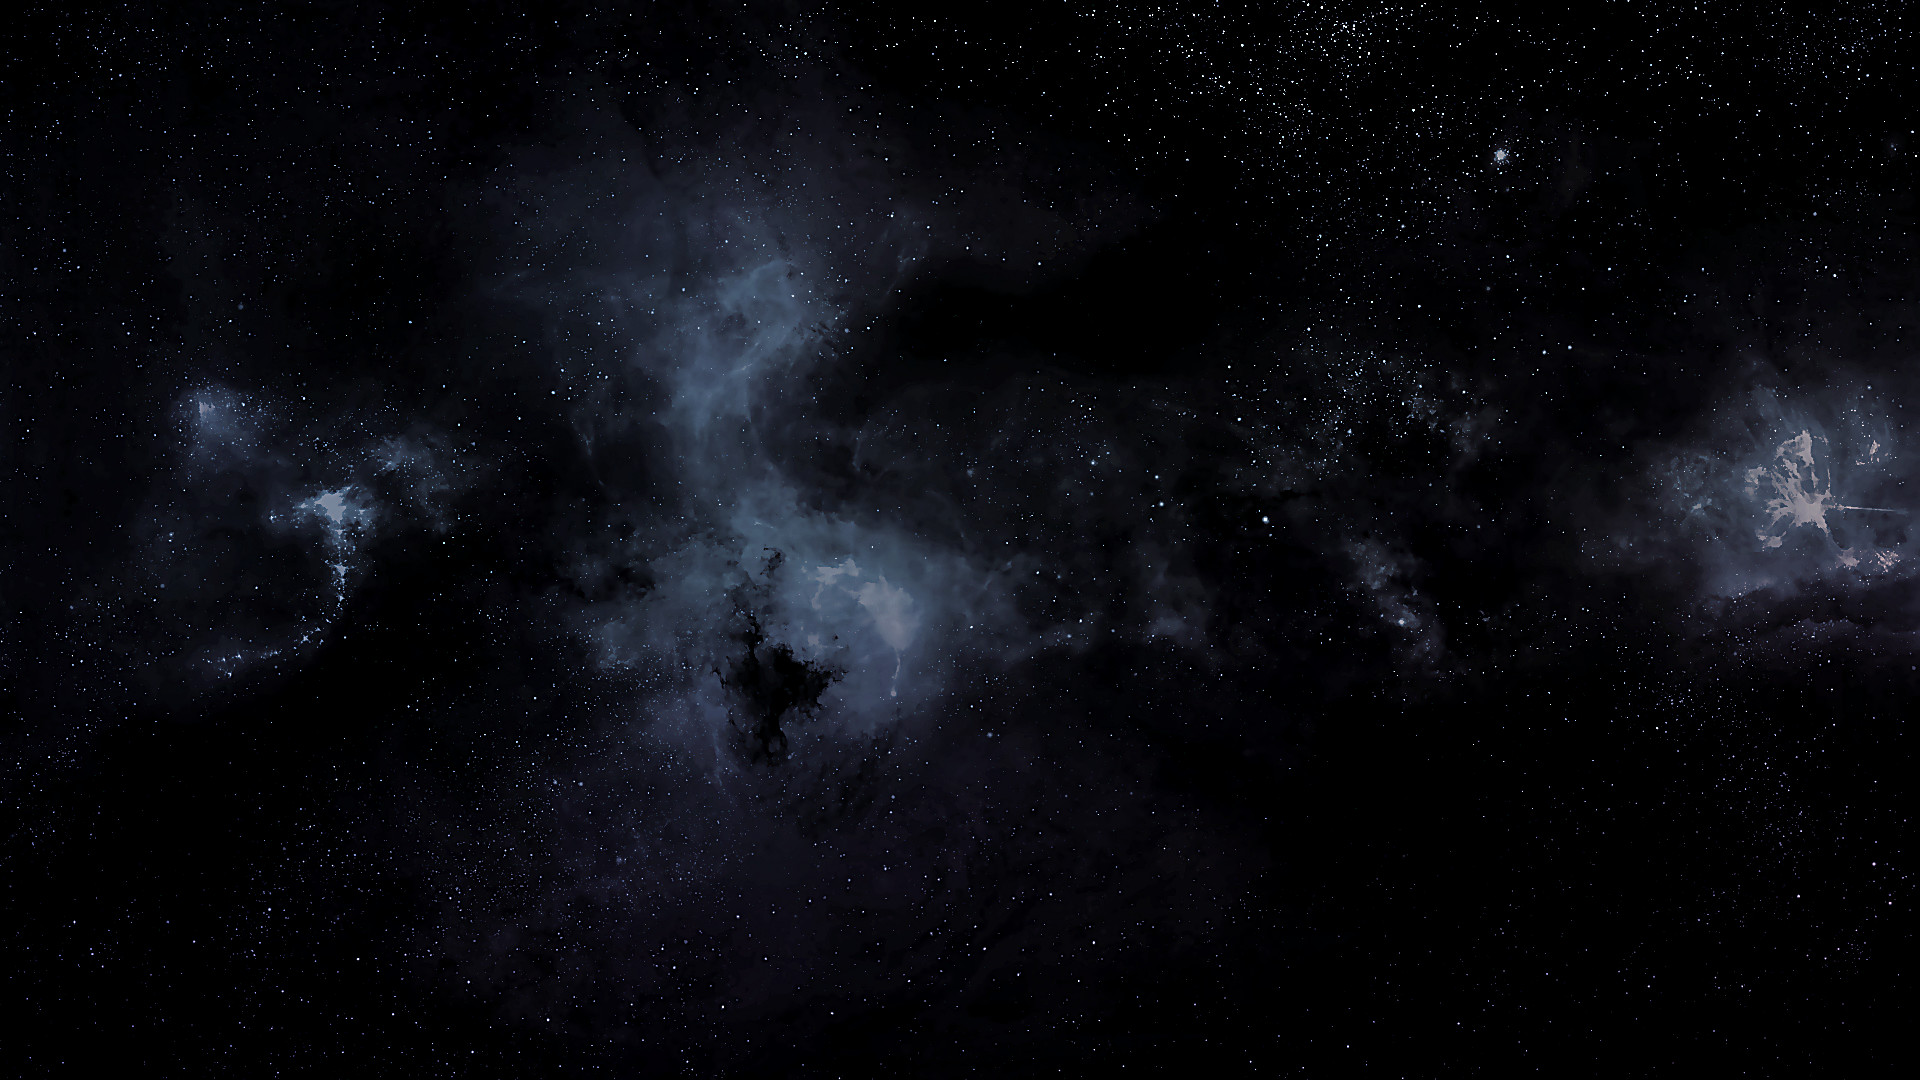 Space / Galaxy Wallpaper Dump! for all of your interstellar needs